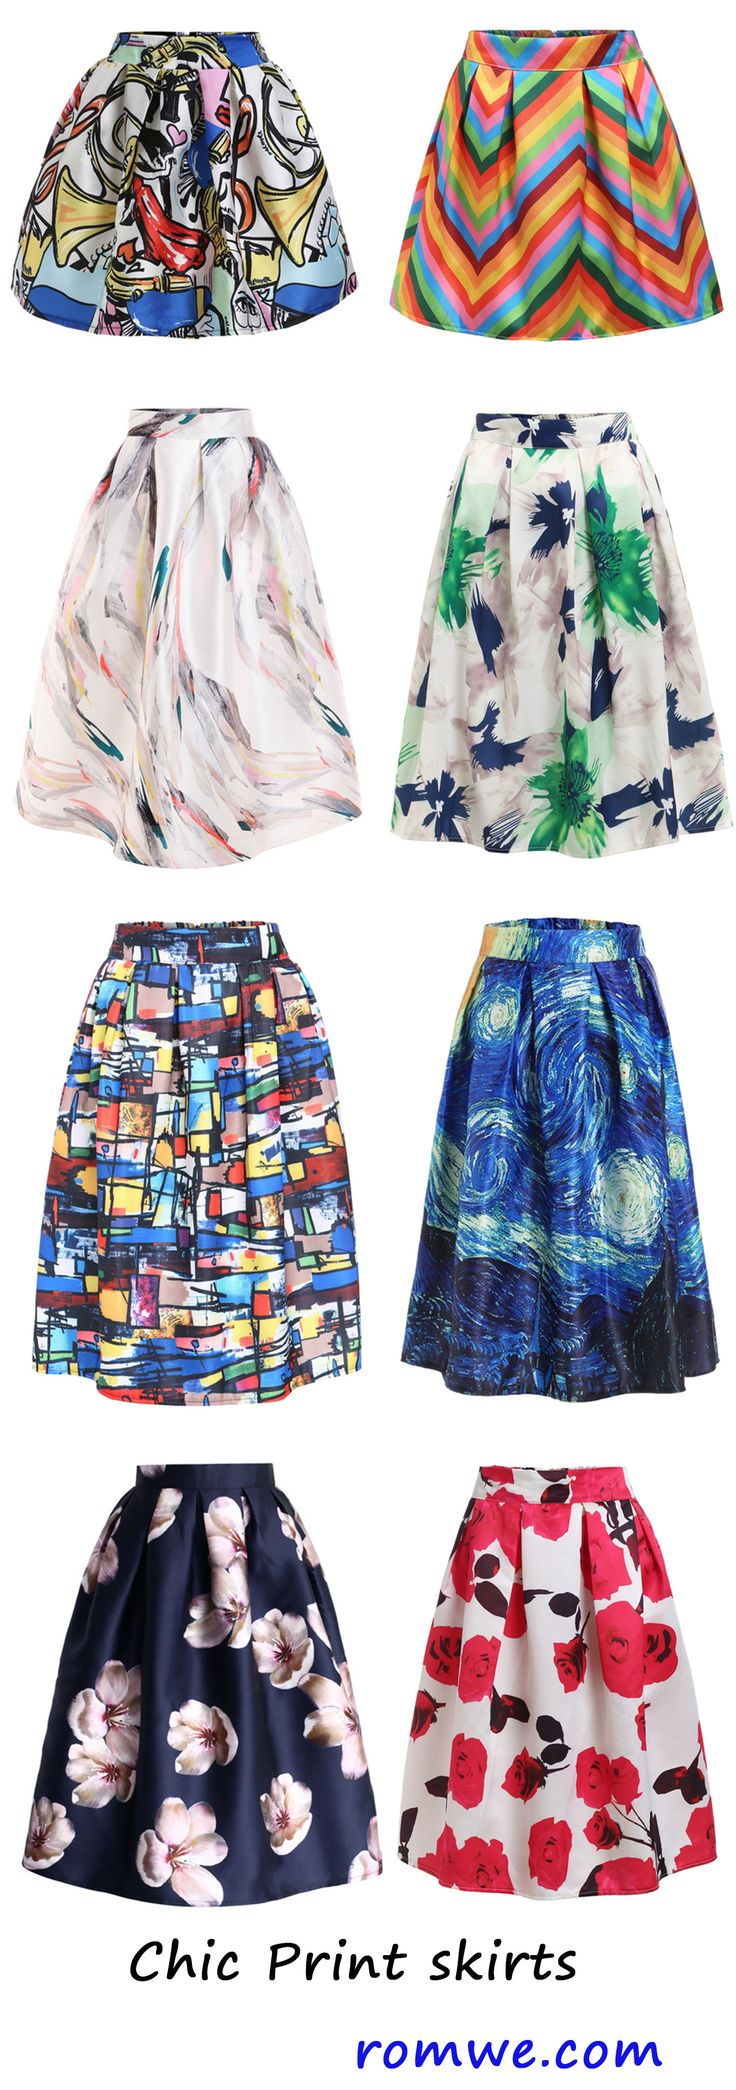 Vintage print skirts - you must have one to make you more chic and pretty. - romwe.com